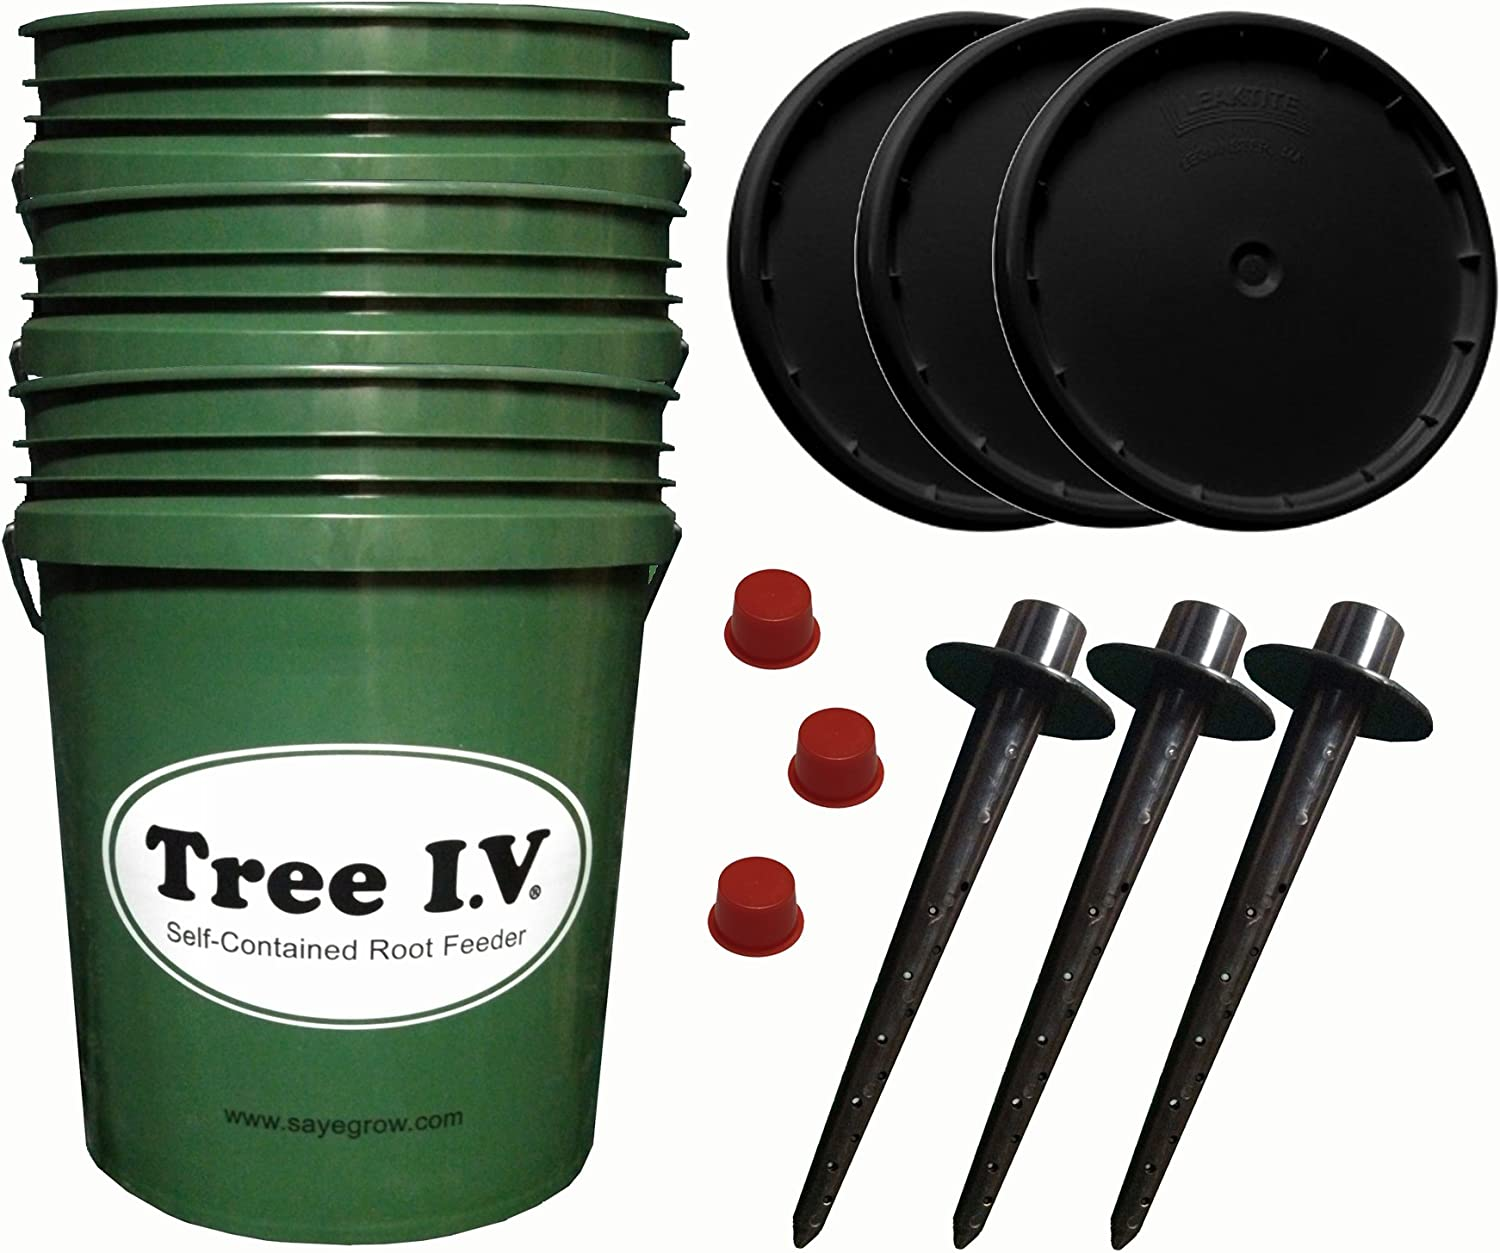 Tree I.V. Fill & Haul Root Seeker Watering System for Remote Trees 3-pk